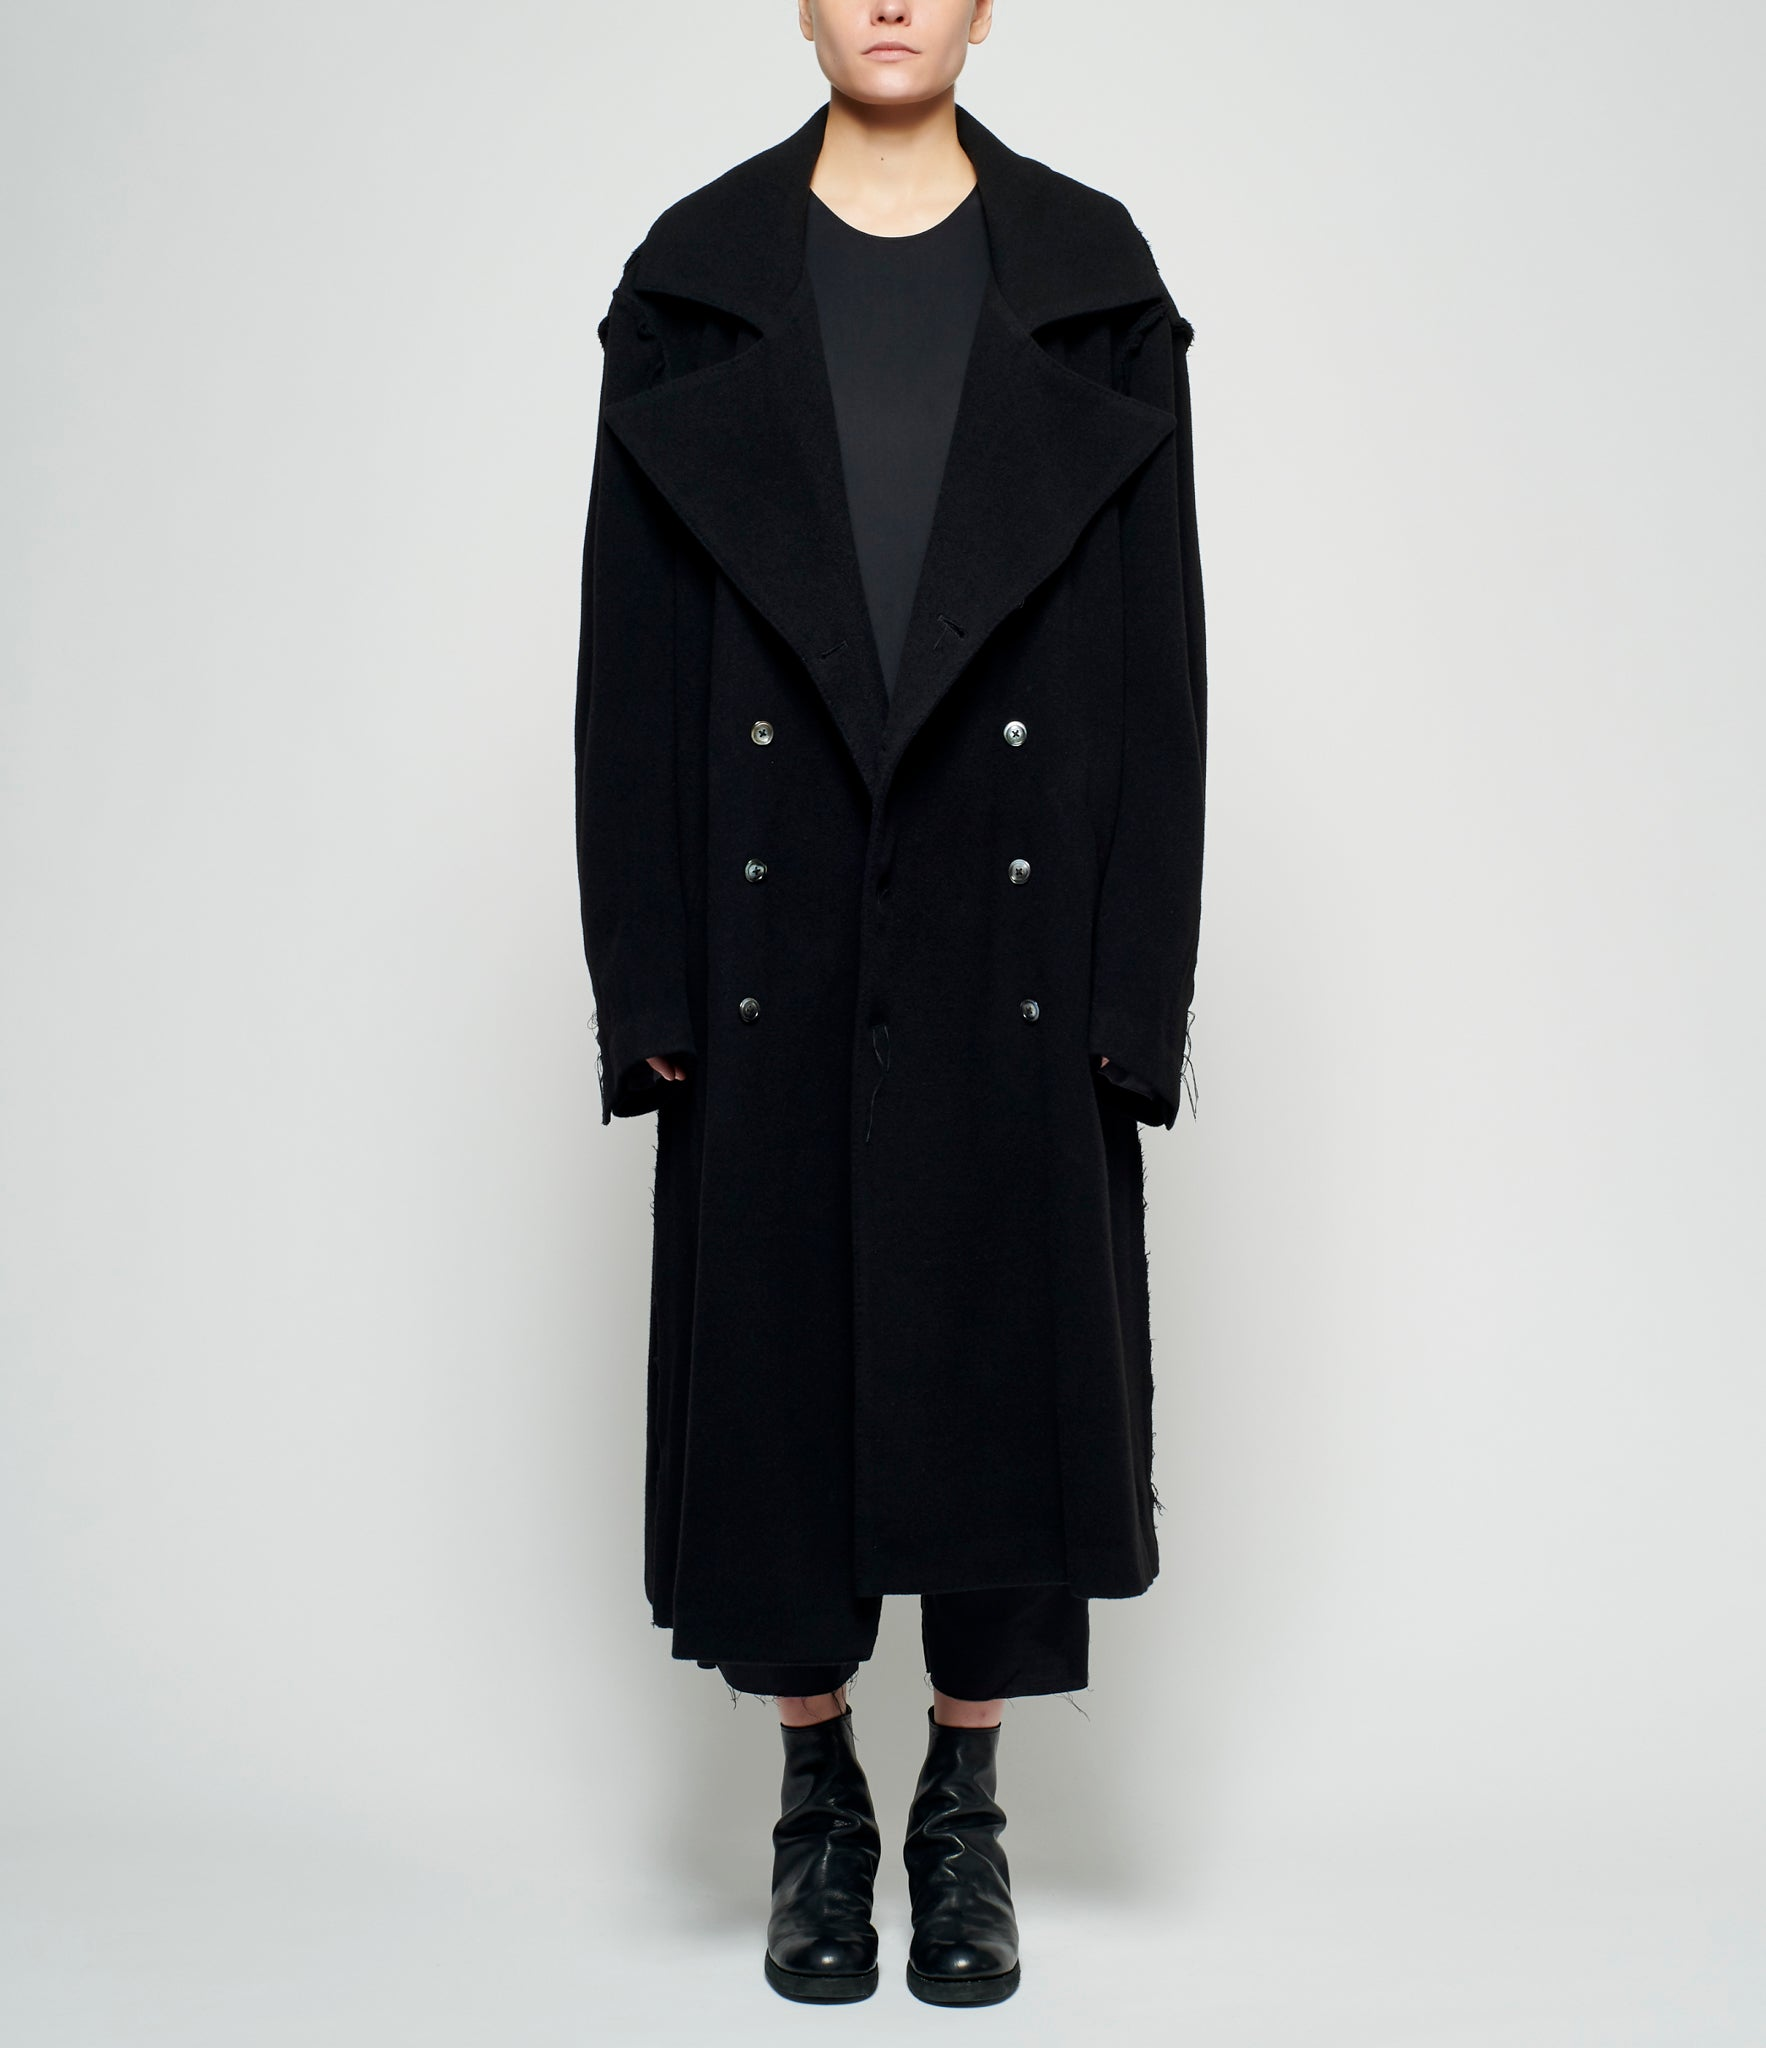 Sagittaire A Frayed Seam Oversized Trench Coat